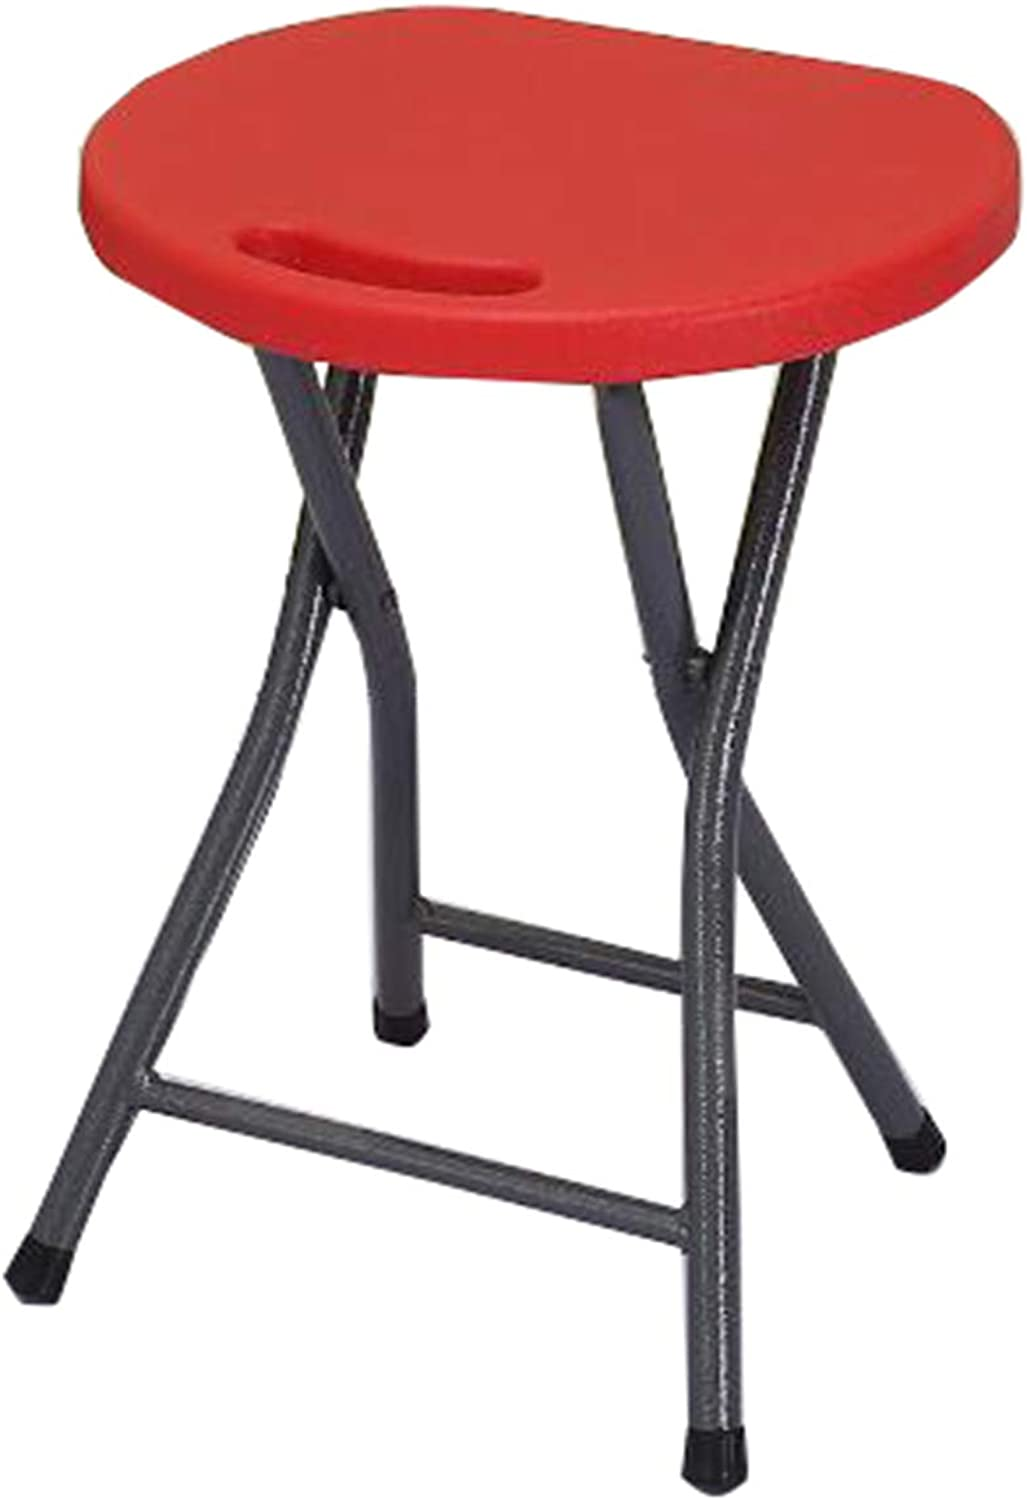 Folding Stool Portable Plastic Folding Chairs with Durable Steel Frame Legs for 150KG Bearing Capacity Easy Carry Handle Heat Wear Resistant Stools for Indoor or Outdoor Garden Use-red